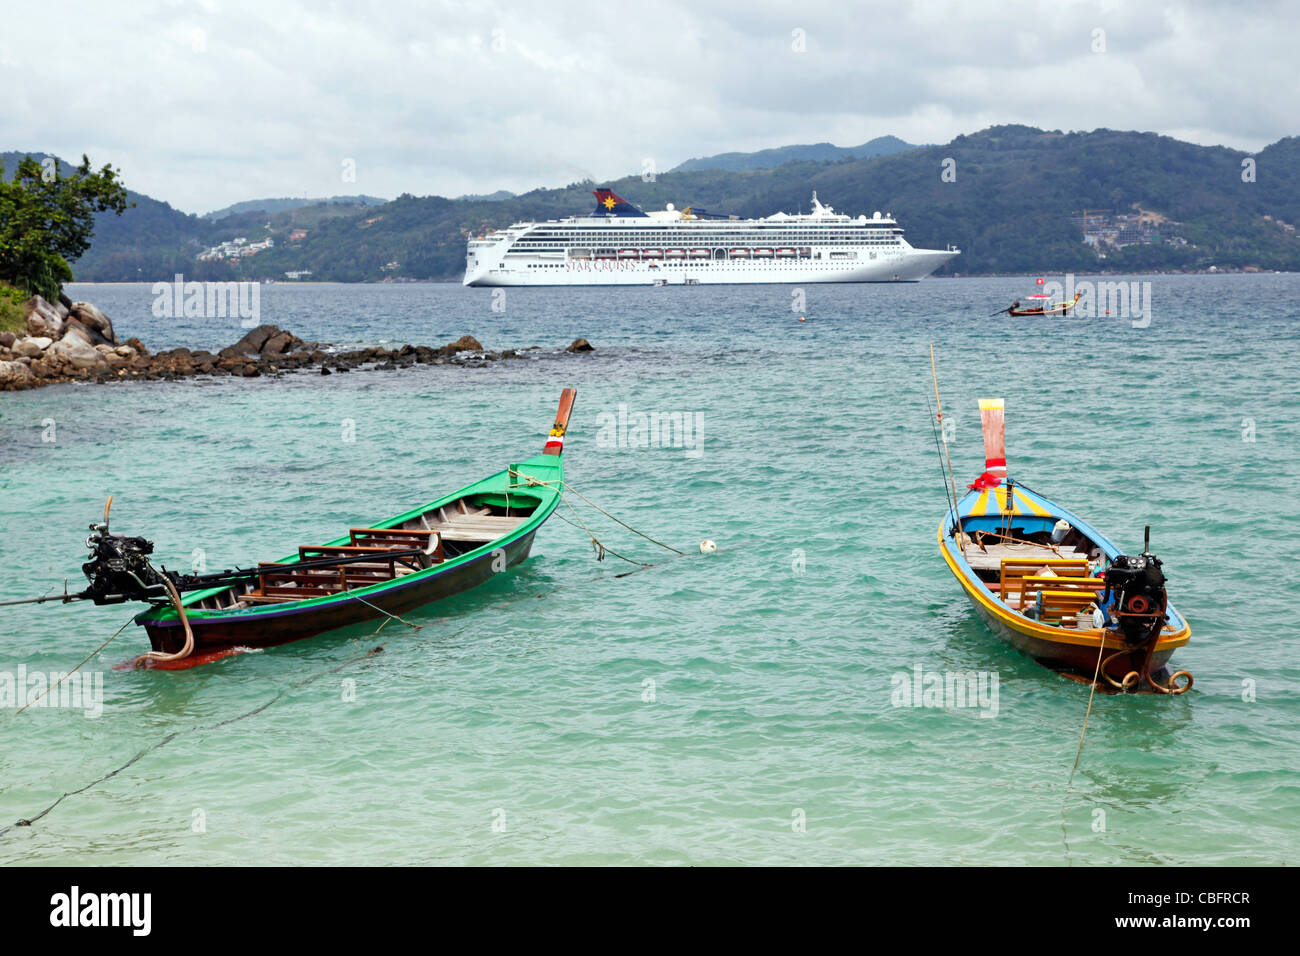 Star Virgo From Star Cruises Cruise Ship And Traditional Thai Long - Cruise ship in thailand